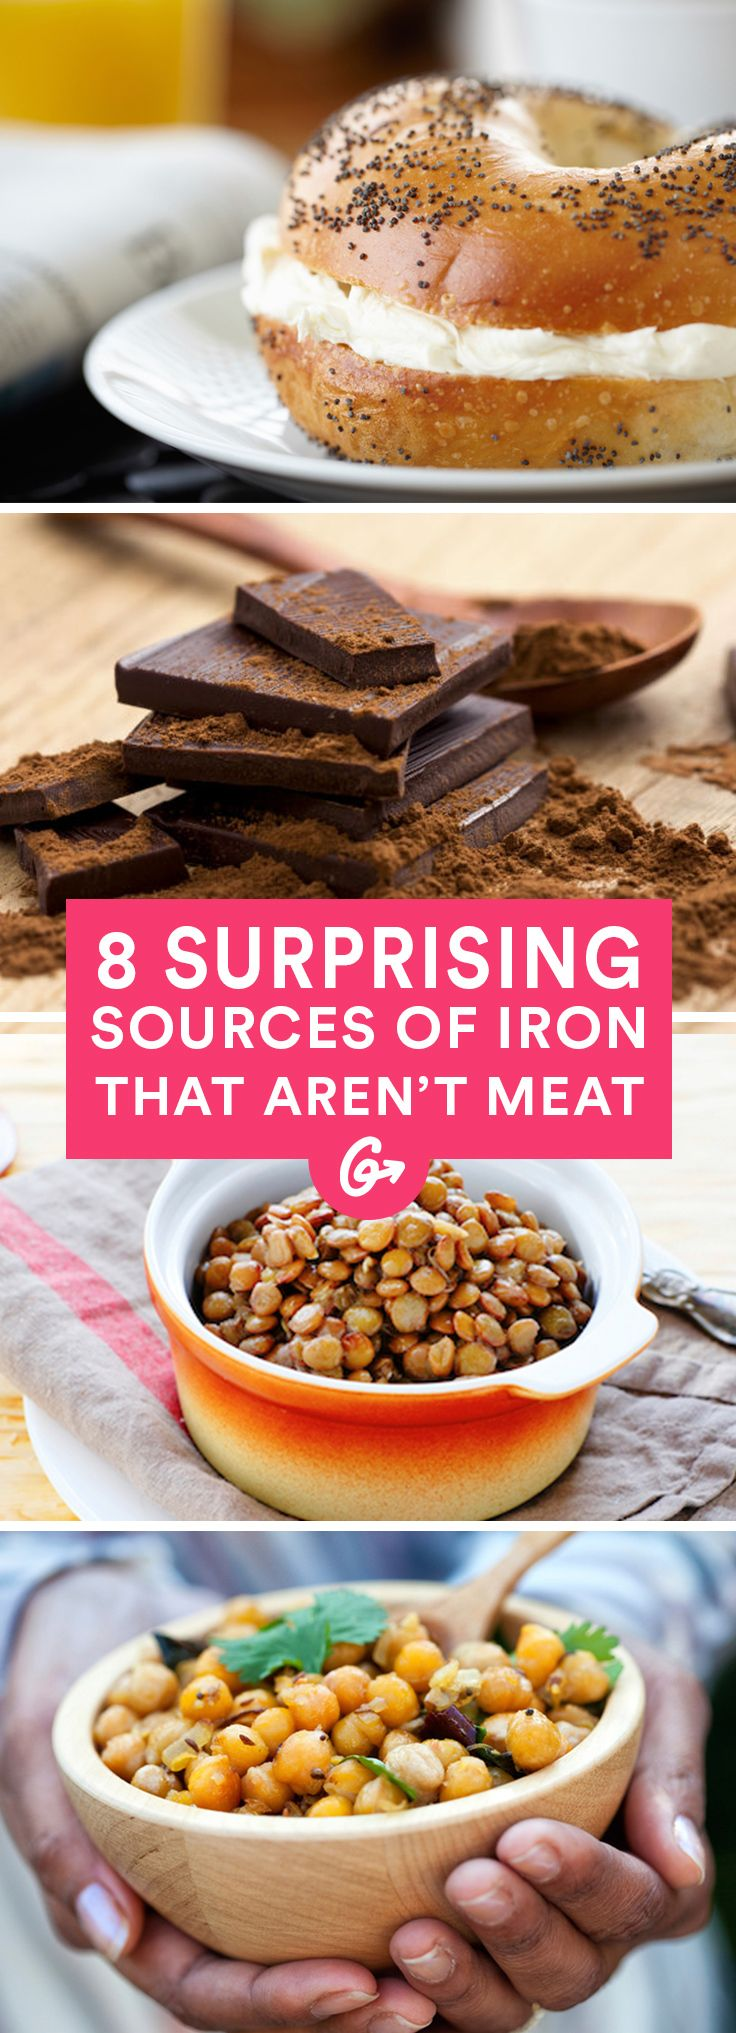 8 Surprising Sources of Iron That Aren't Meat Foods with